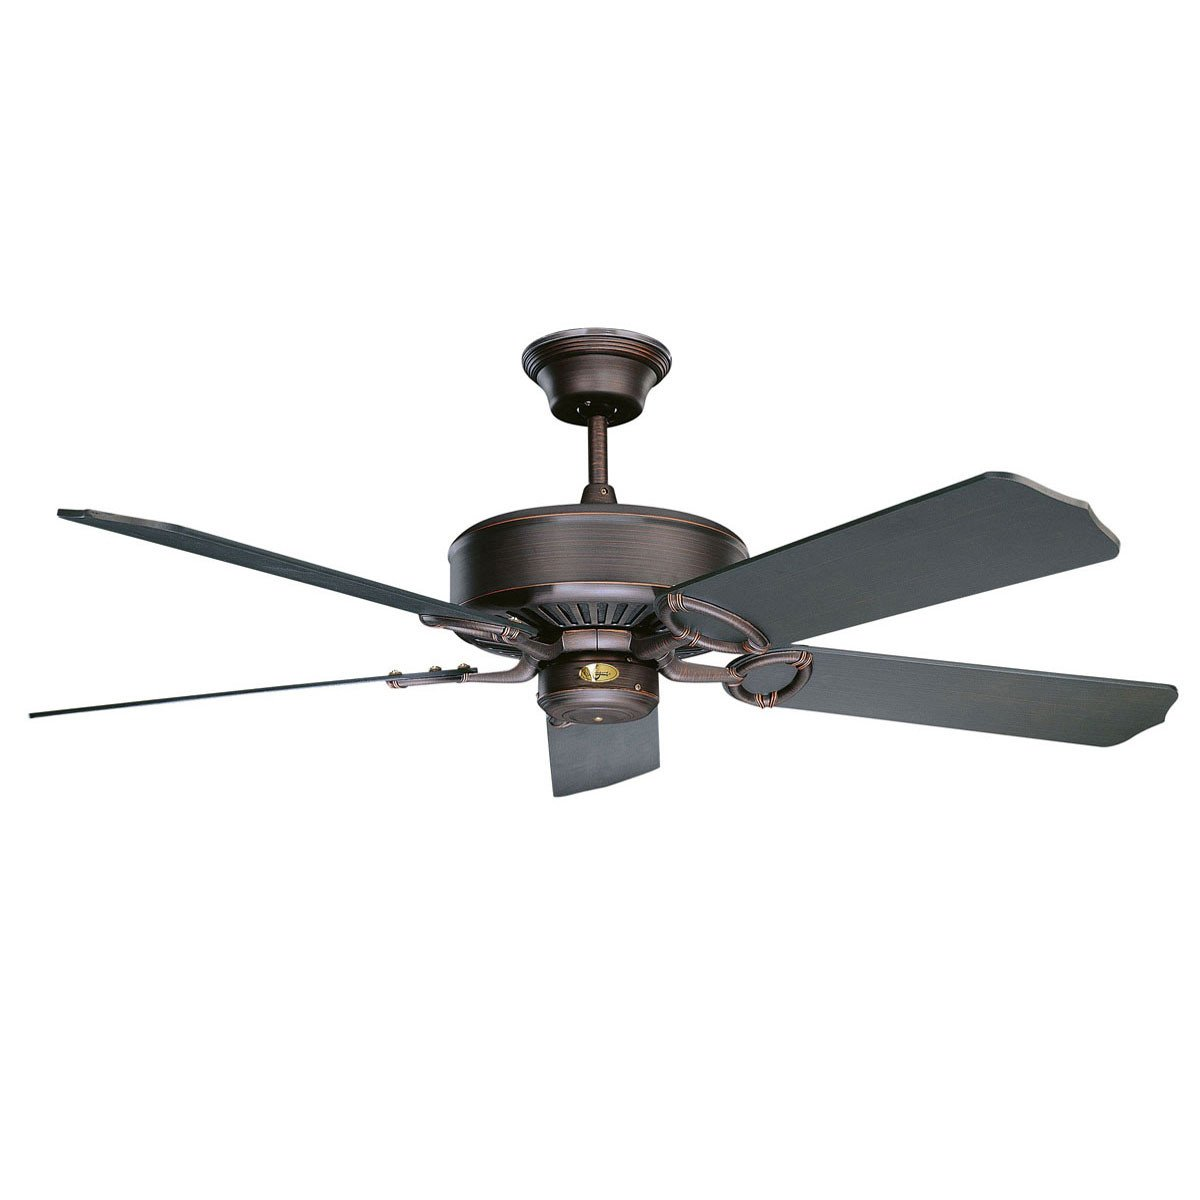 "Concord Fans 52"" Madison Energy Saver Oil Rubbed Bronze Modern Ceiling Fan"